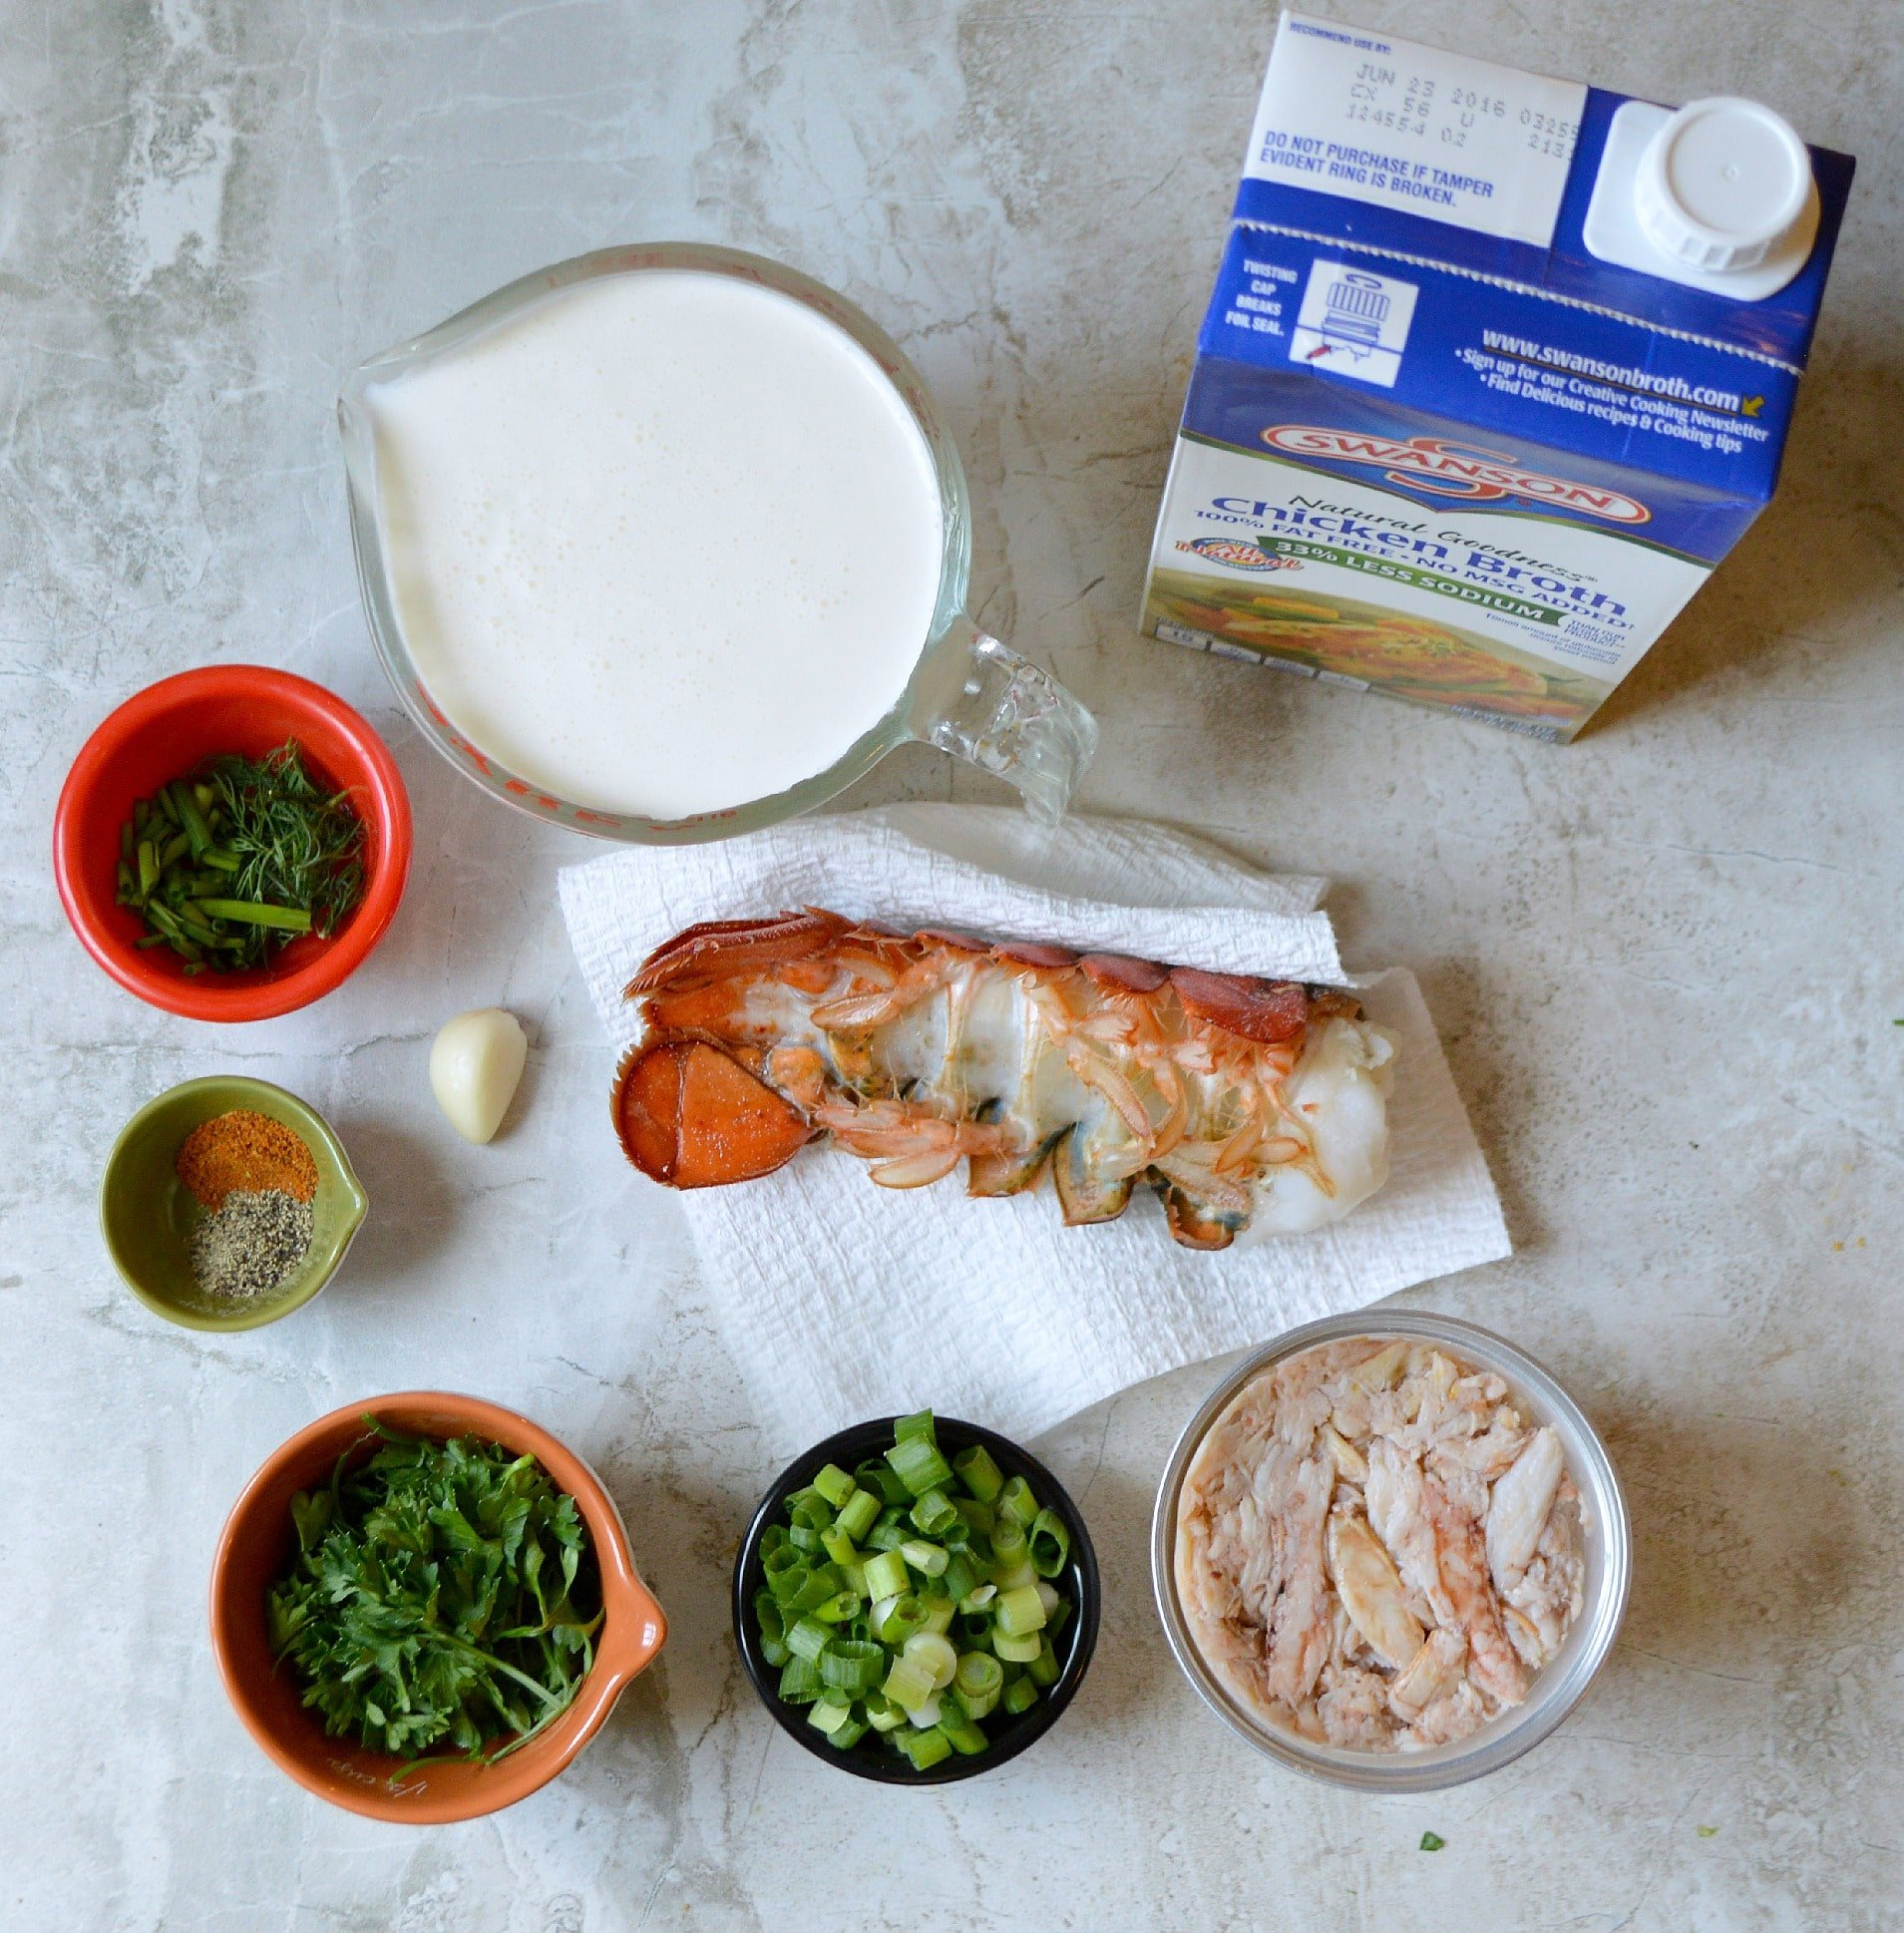 Lobster Bisque Ingredients. A smooth and creamy Slow Cooker Lobster Bisque Soup that's always a family favorite. It's a creamy and spicy soup that uses lobster tails for a flavorful rich bisque. Your family won't believe you made this decadent soup in a crock-pot!